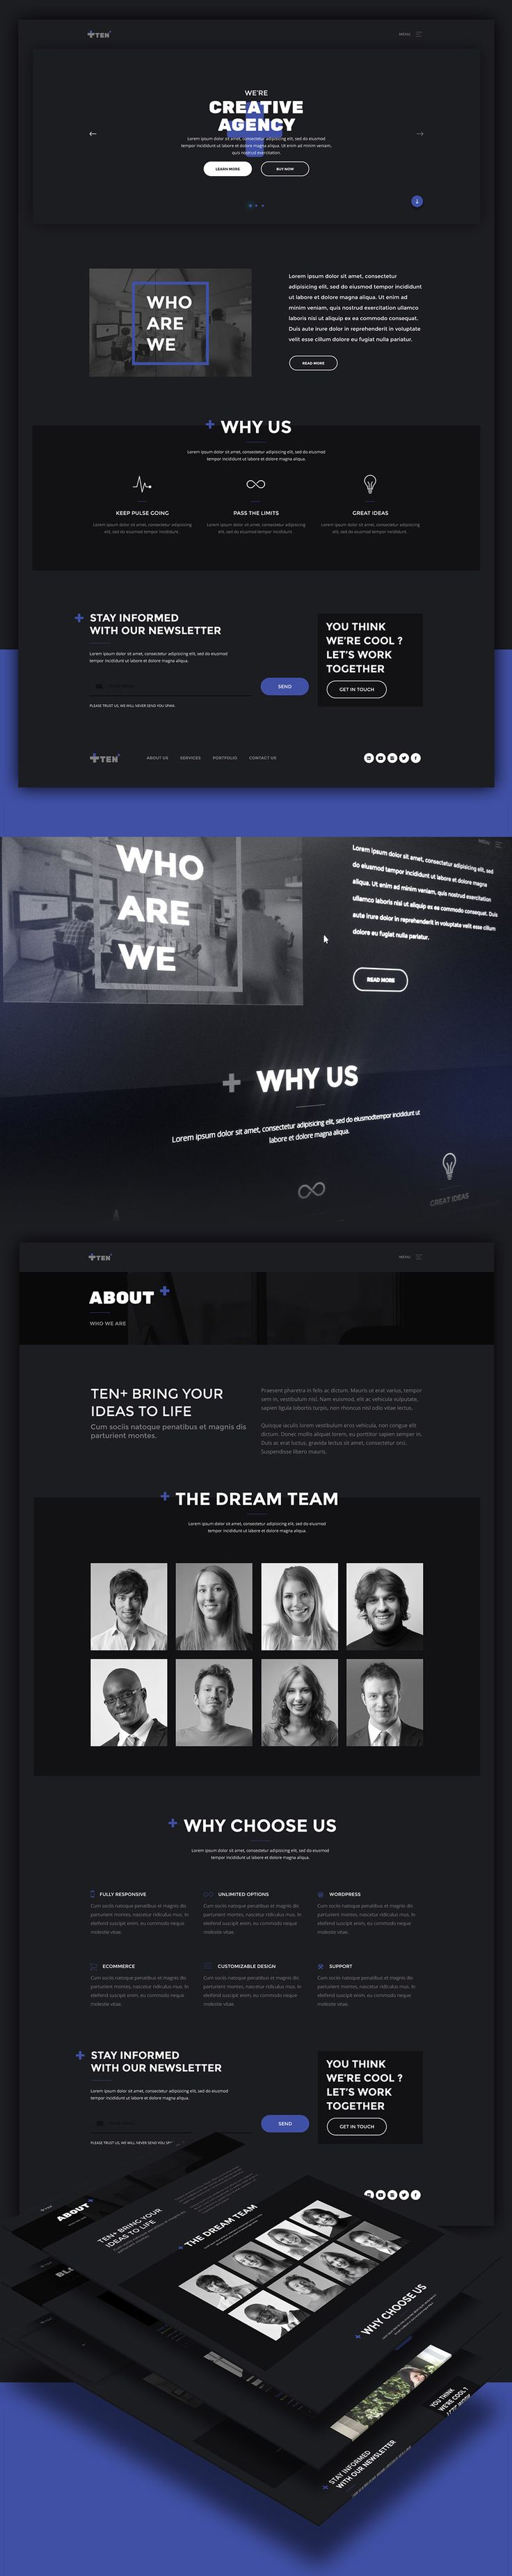 Nice Creative Digital Agencies Website Templates Free PSD Set. Download Creative Digital Agencies Website Templates Free PSD Set. Today's Freebie is an elegant template that has a dark theme design and can be used to create websites for creative agencies and showcasing company portfolio. This resources comes with HTML files which can save the time to create your site. Feel free to use it in your upcoming personal and commercial projects. Hope you like it. Enjoy!